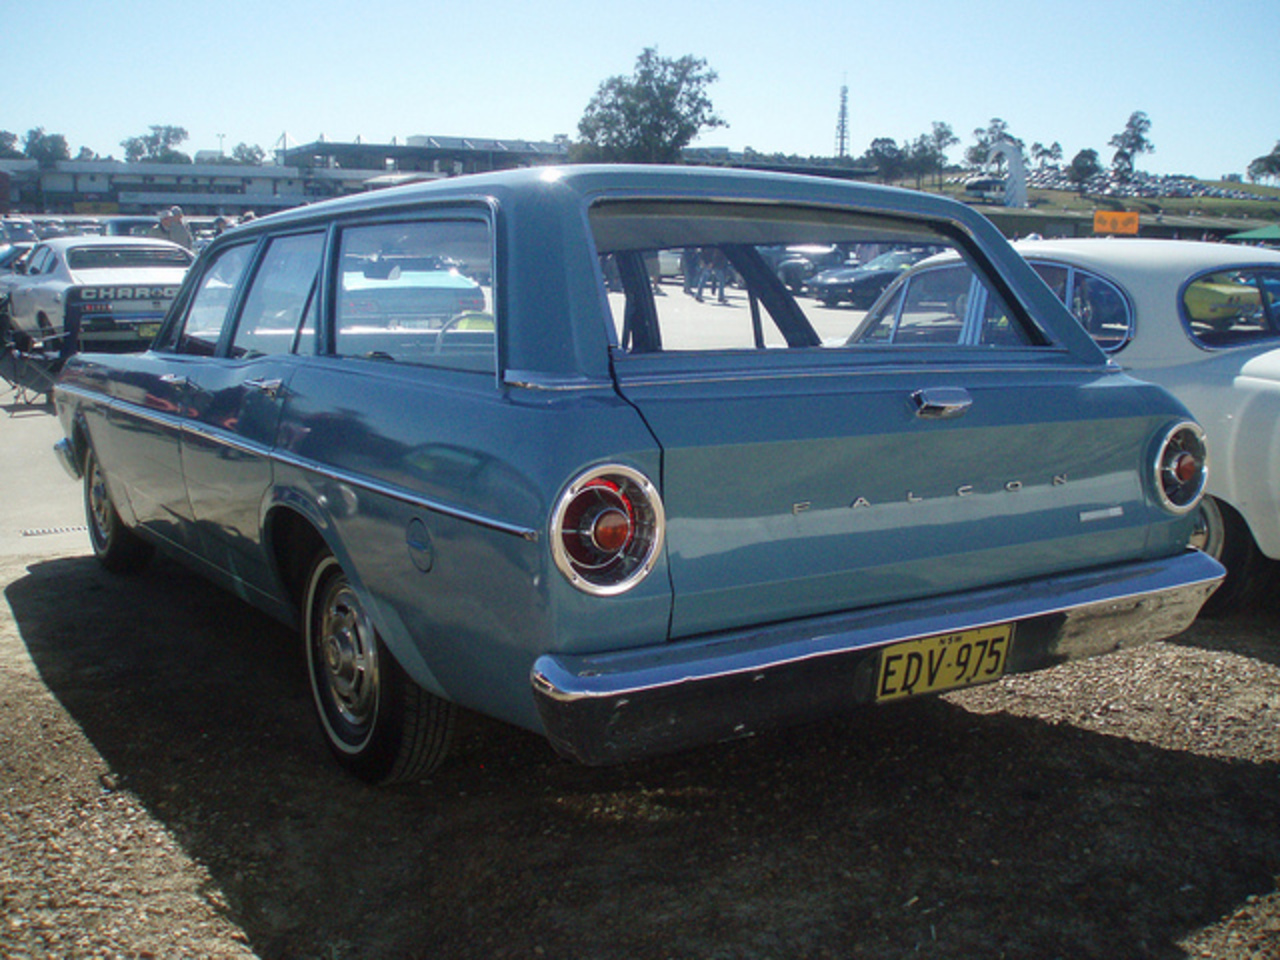 1966 Ford XR Falcon 500 station wagon | Flickr - Photo Sharing!